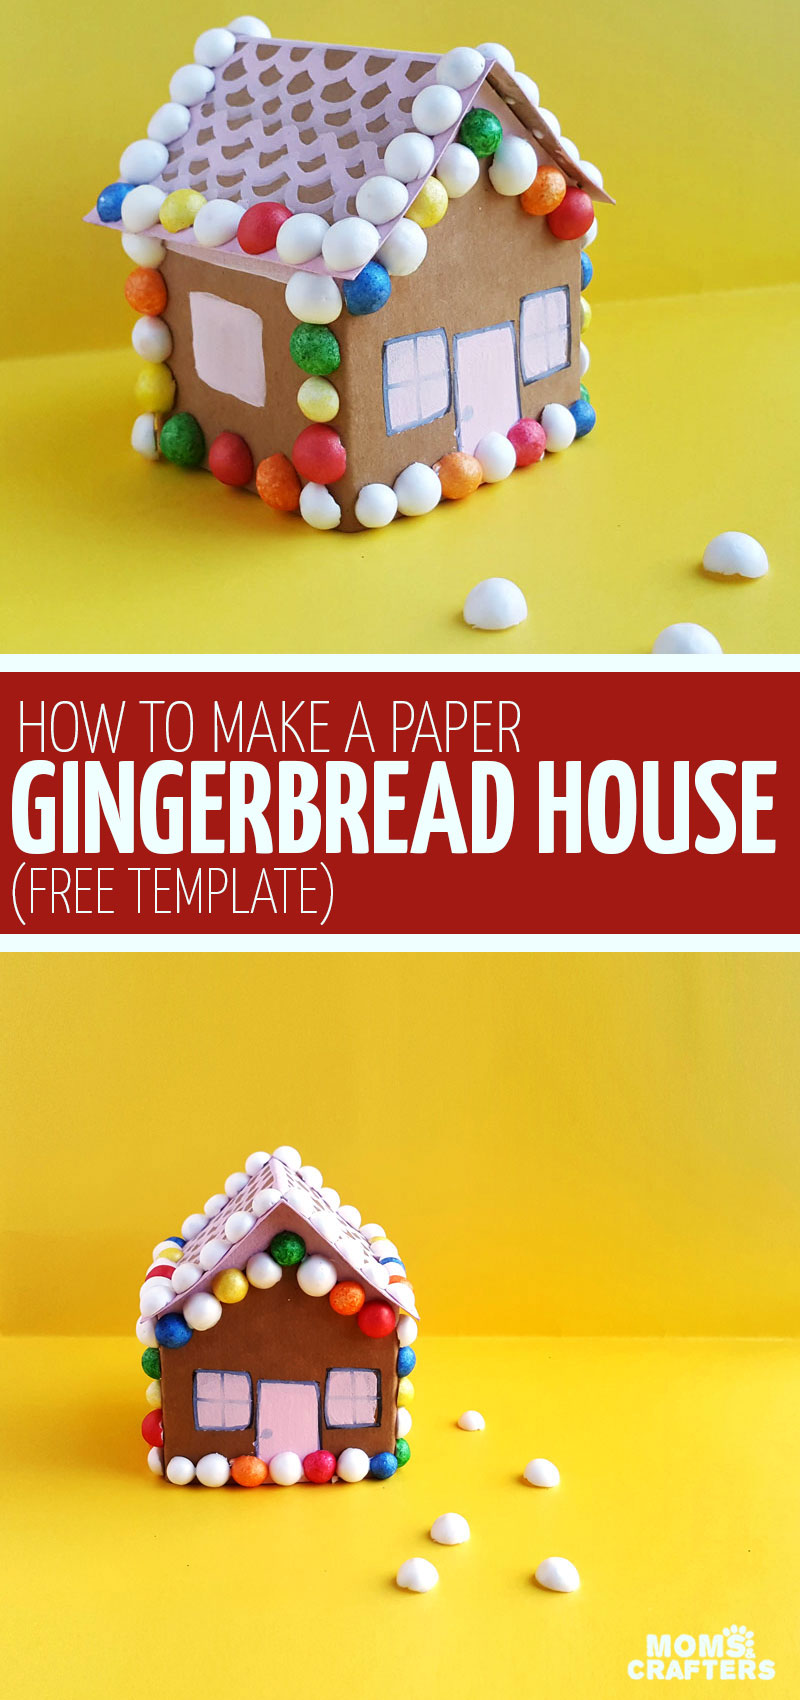 photograph relating to Free Printable Paper Crafts named Gingerbread Household Craft versus Paper - Totally free Printable Template